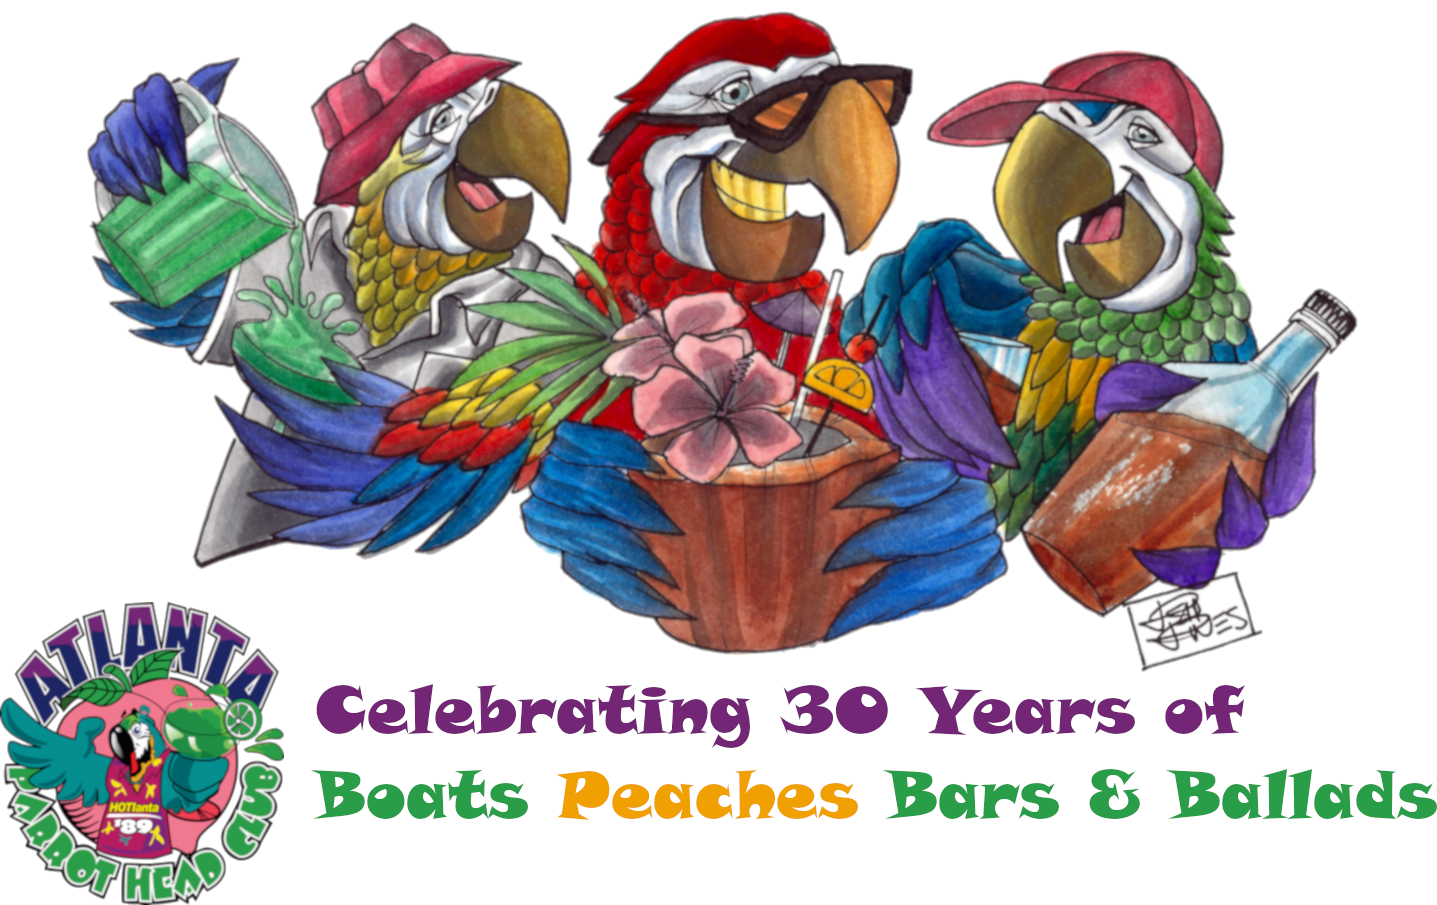 The Atlanta Parrot Head Club - Atlanta PHC 30th Anniversary Celebration